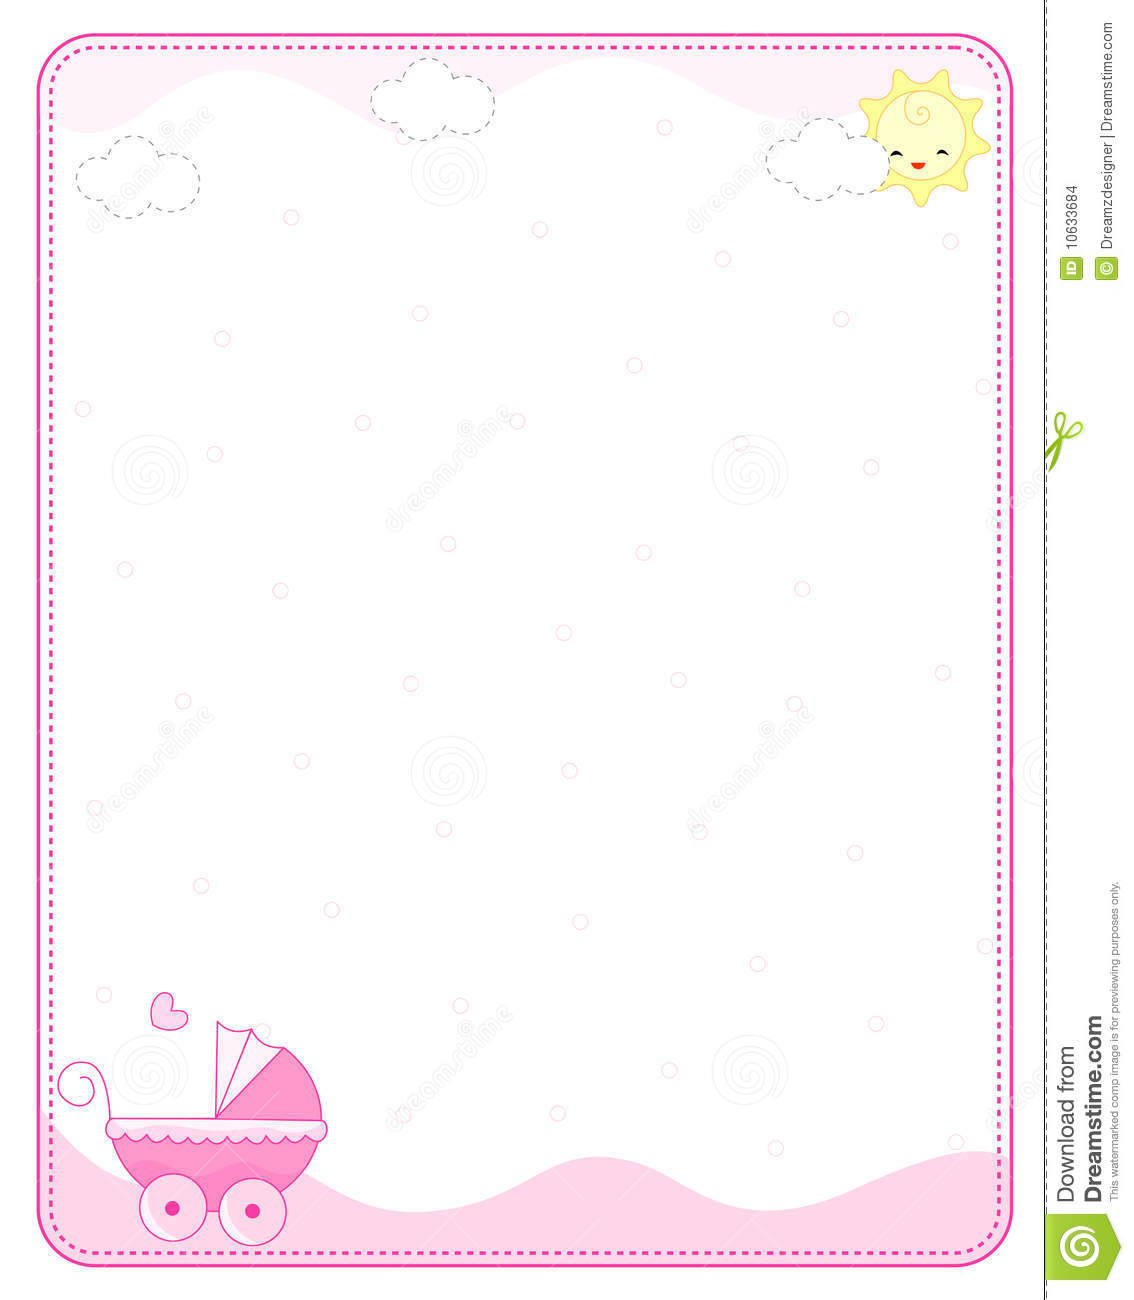 Baby girl clipart border png free download Baby girl clipart border - ClipartFest png free download